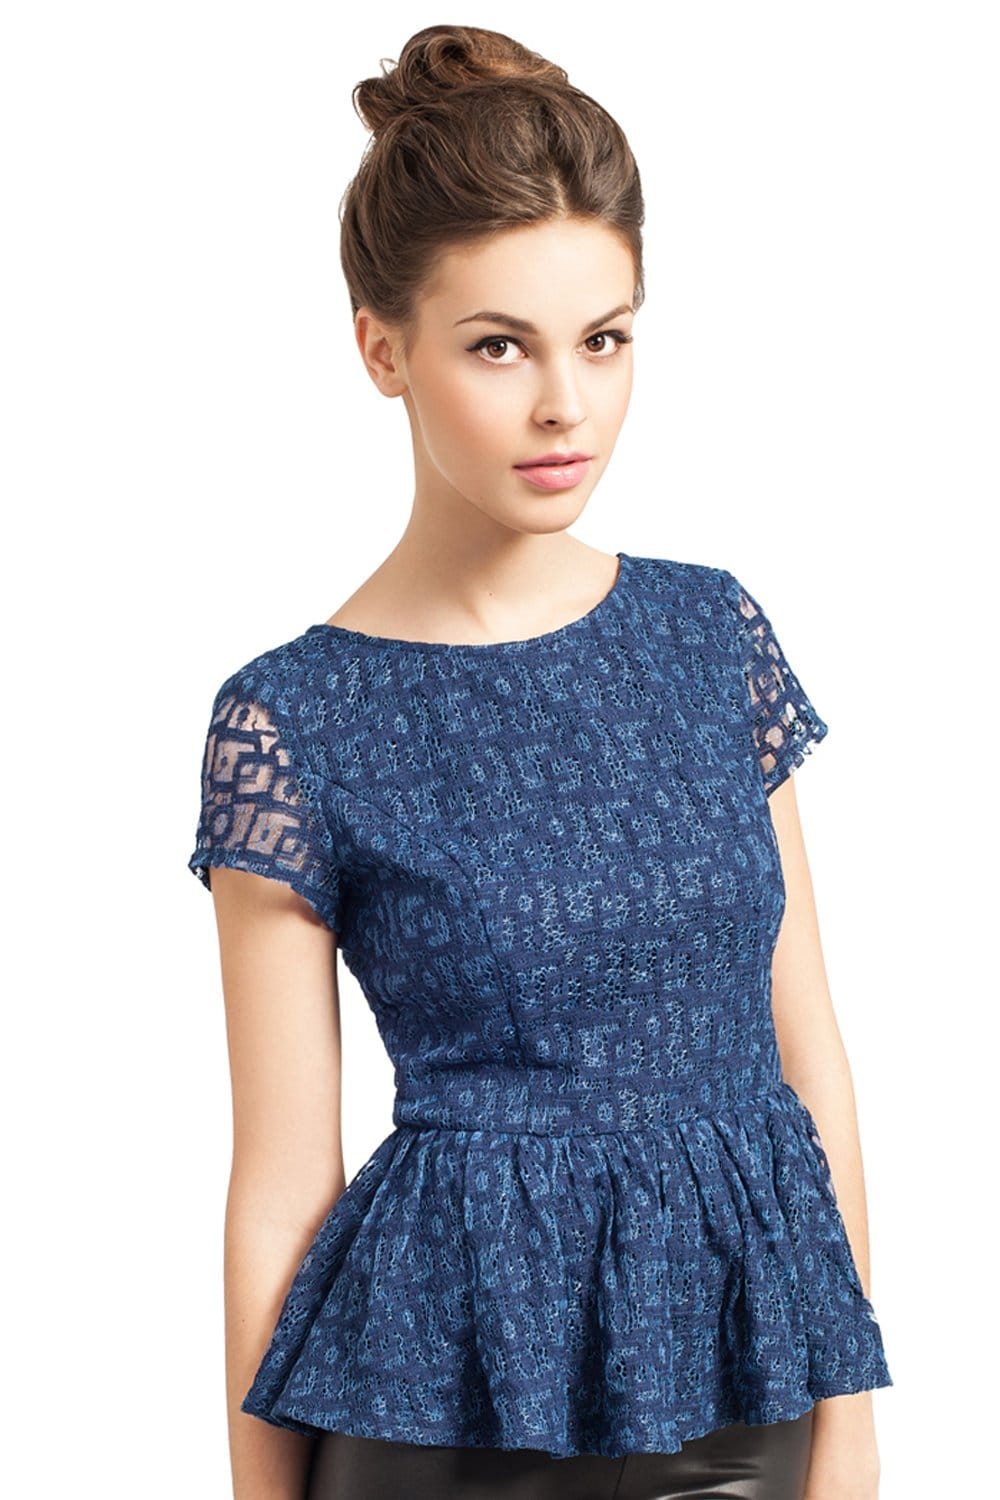 Find great deals on eBay for lace peplum tops. Shop with confidence.